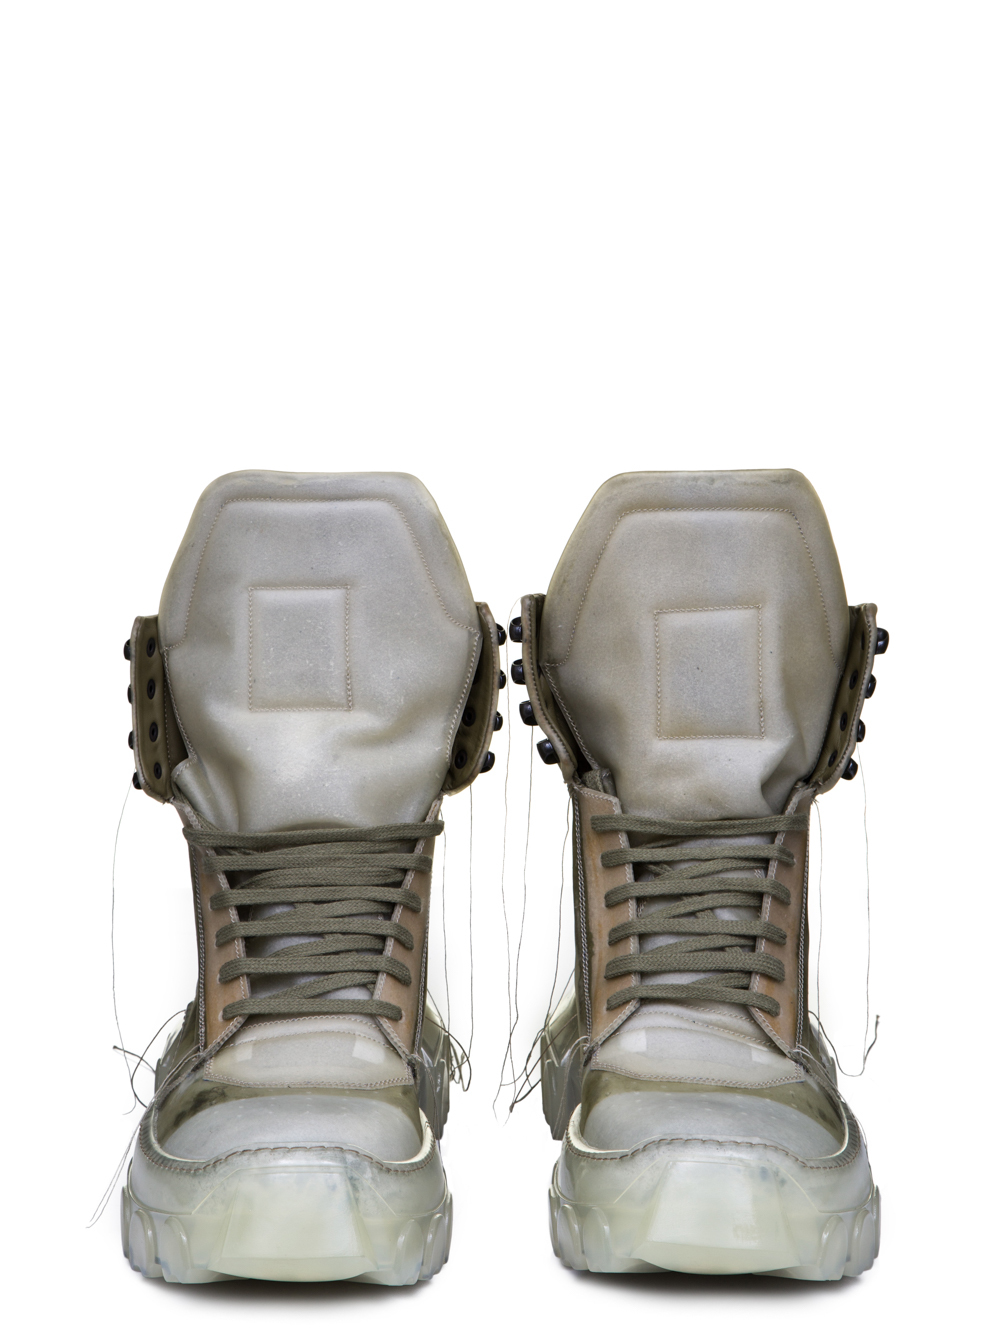 RICK OWENS SS19 BABEL HIKING SNEAKERS IN NATURAL TRANSPARENT CALF LEATHER